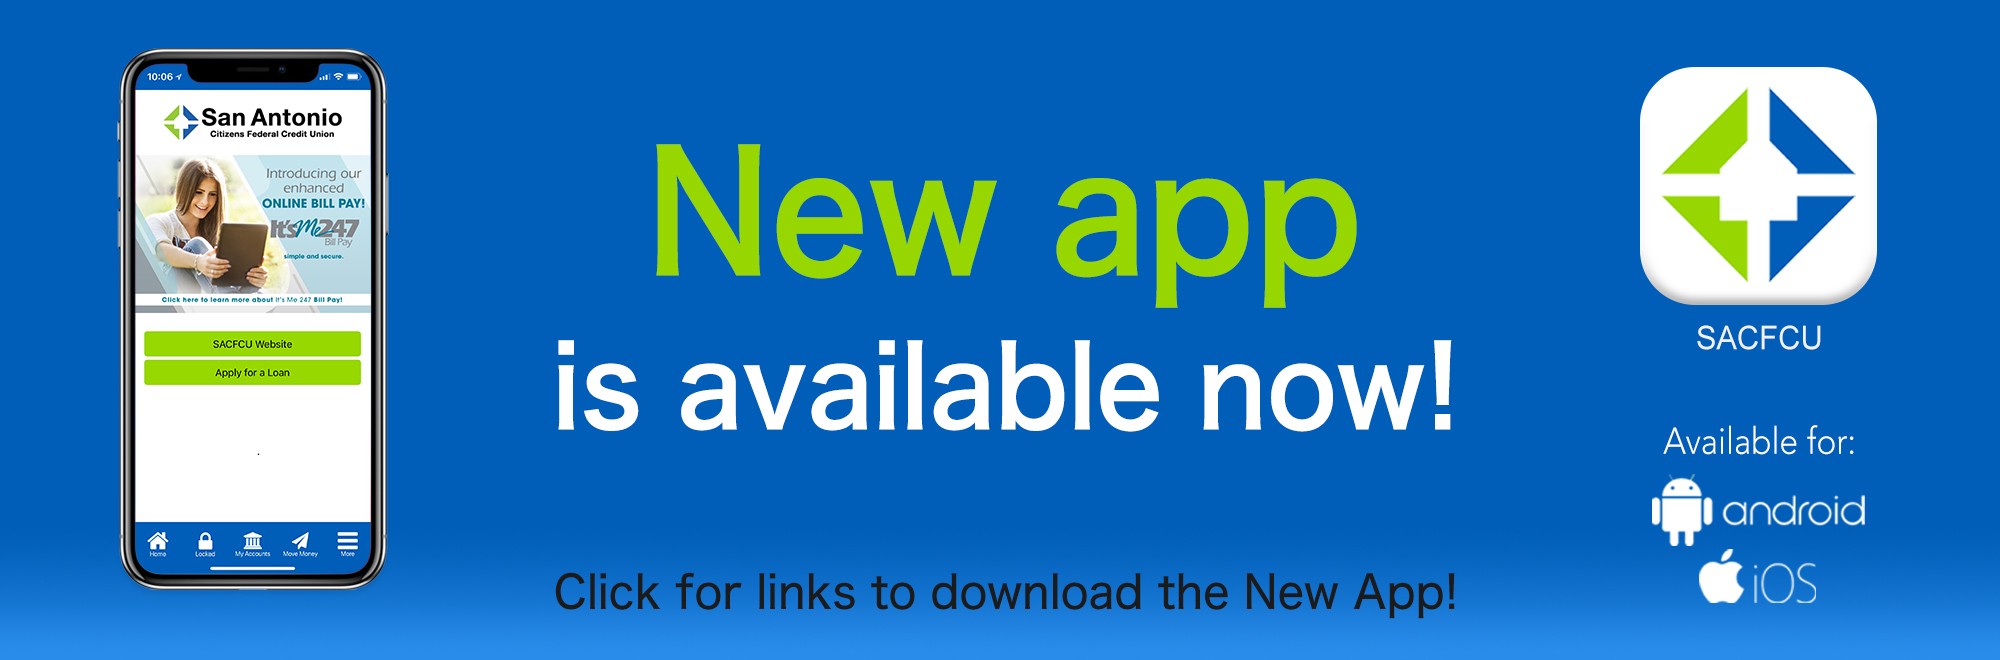 SACFCU's New Mobile App is finally here! Click this web banner for more information, or for links to download our new app.